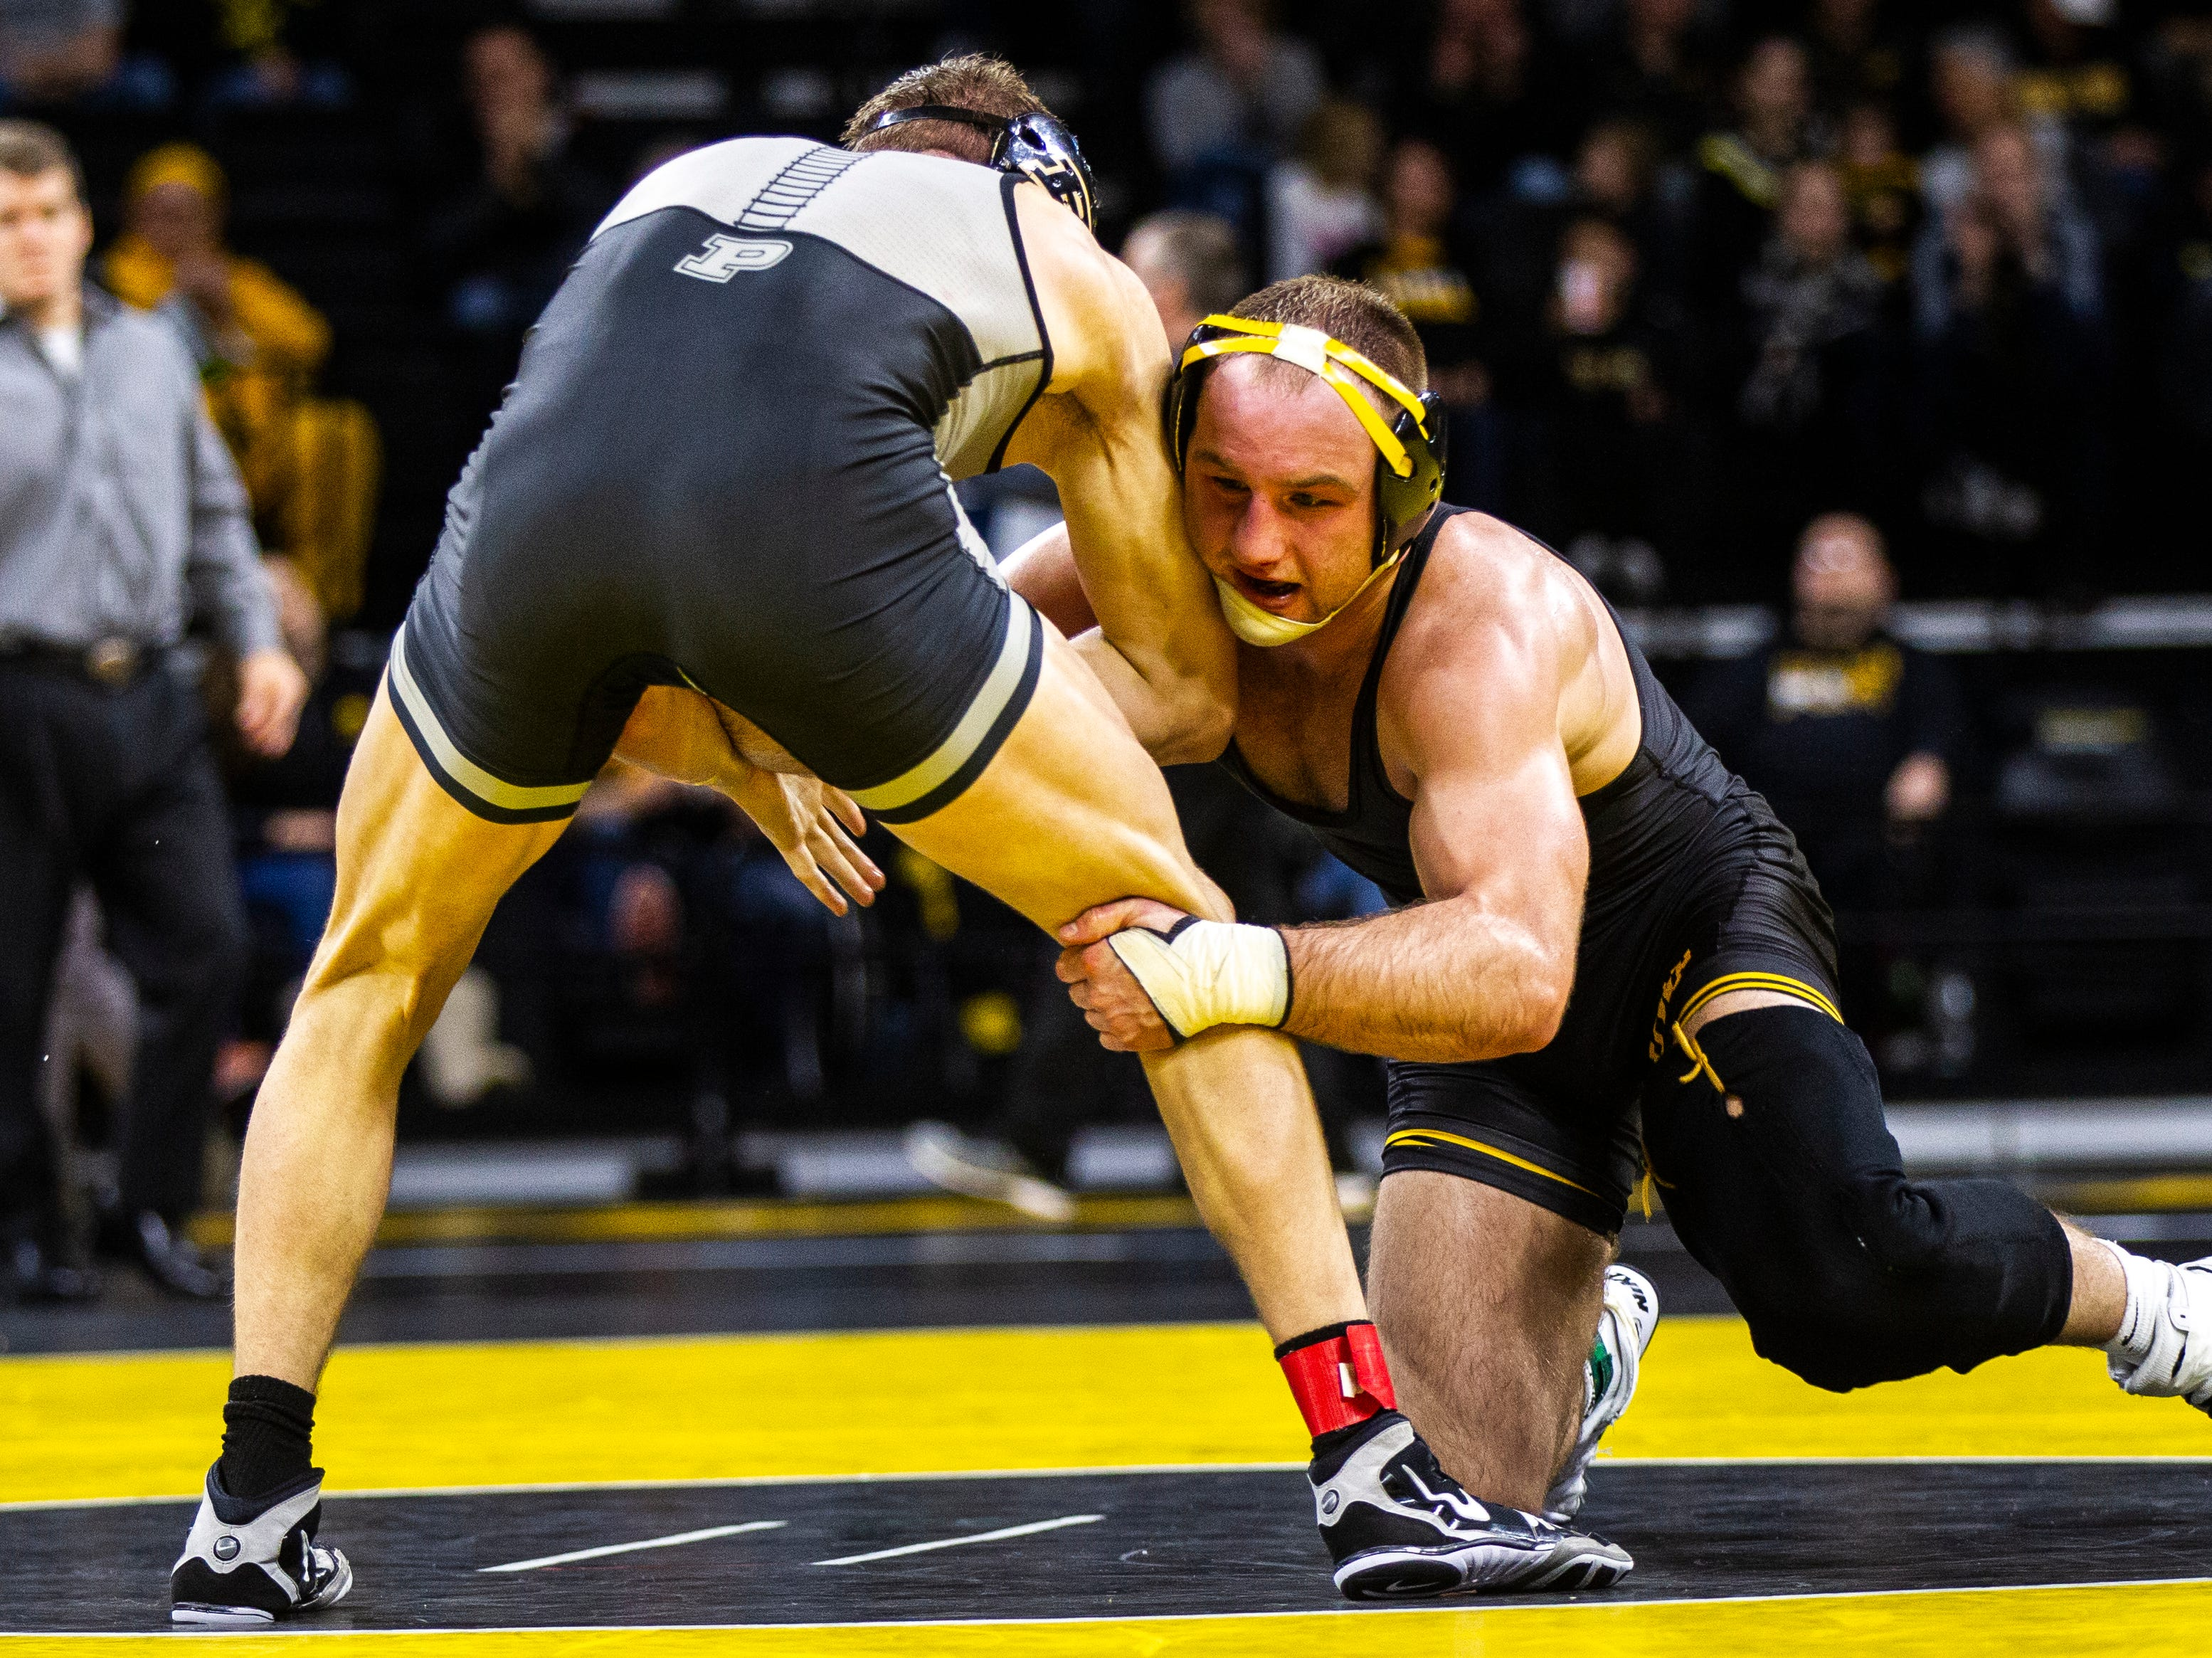 Iowa's Alex Marinelli wrestles Purdue's Cole Wysocki at 165 during a Big Ten Conference NCAA wrestling dual on Saturday, Nov. 24, 2018, at Carver-Hawkeye Arena in Iowa City.